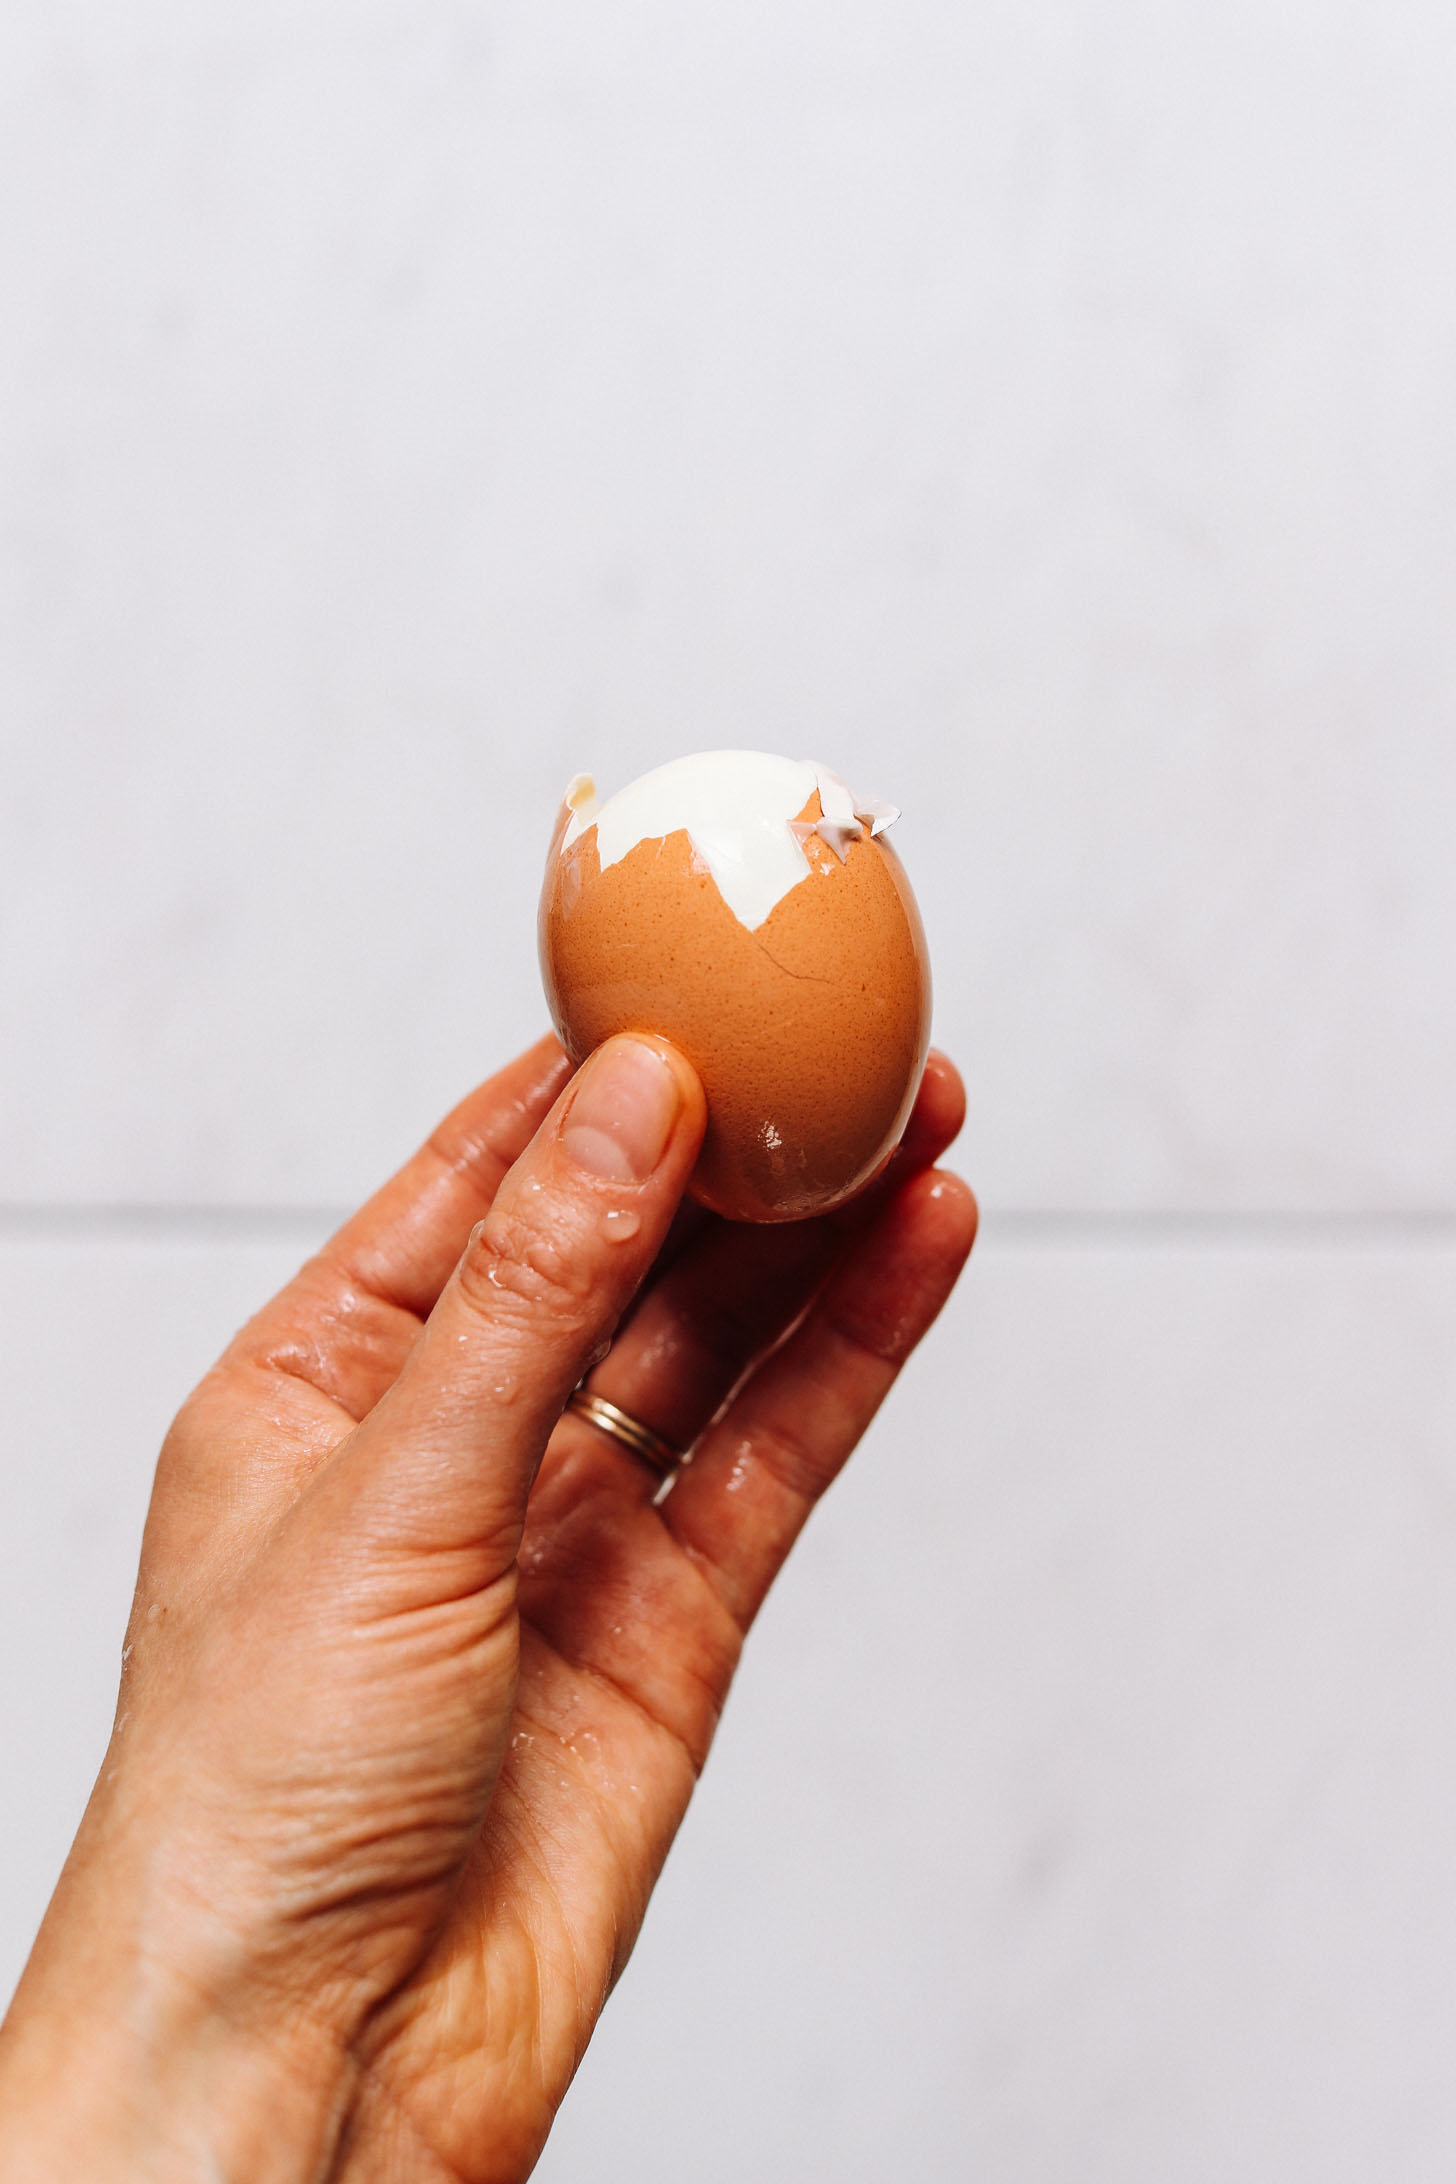 Showing a partially peeled hard boiled egg